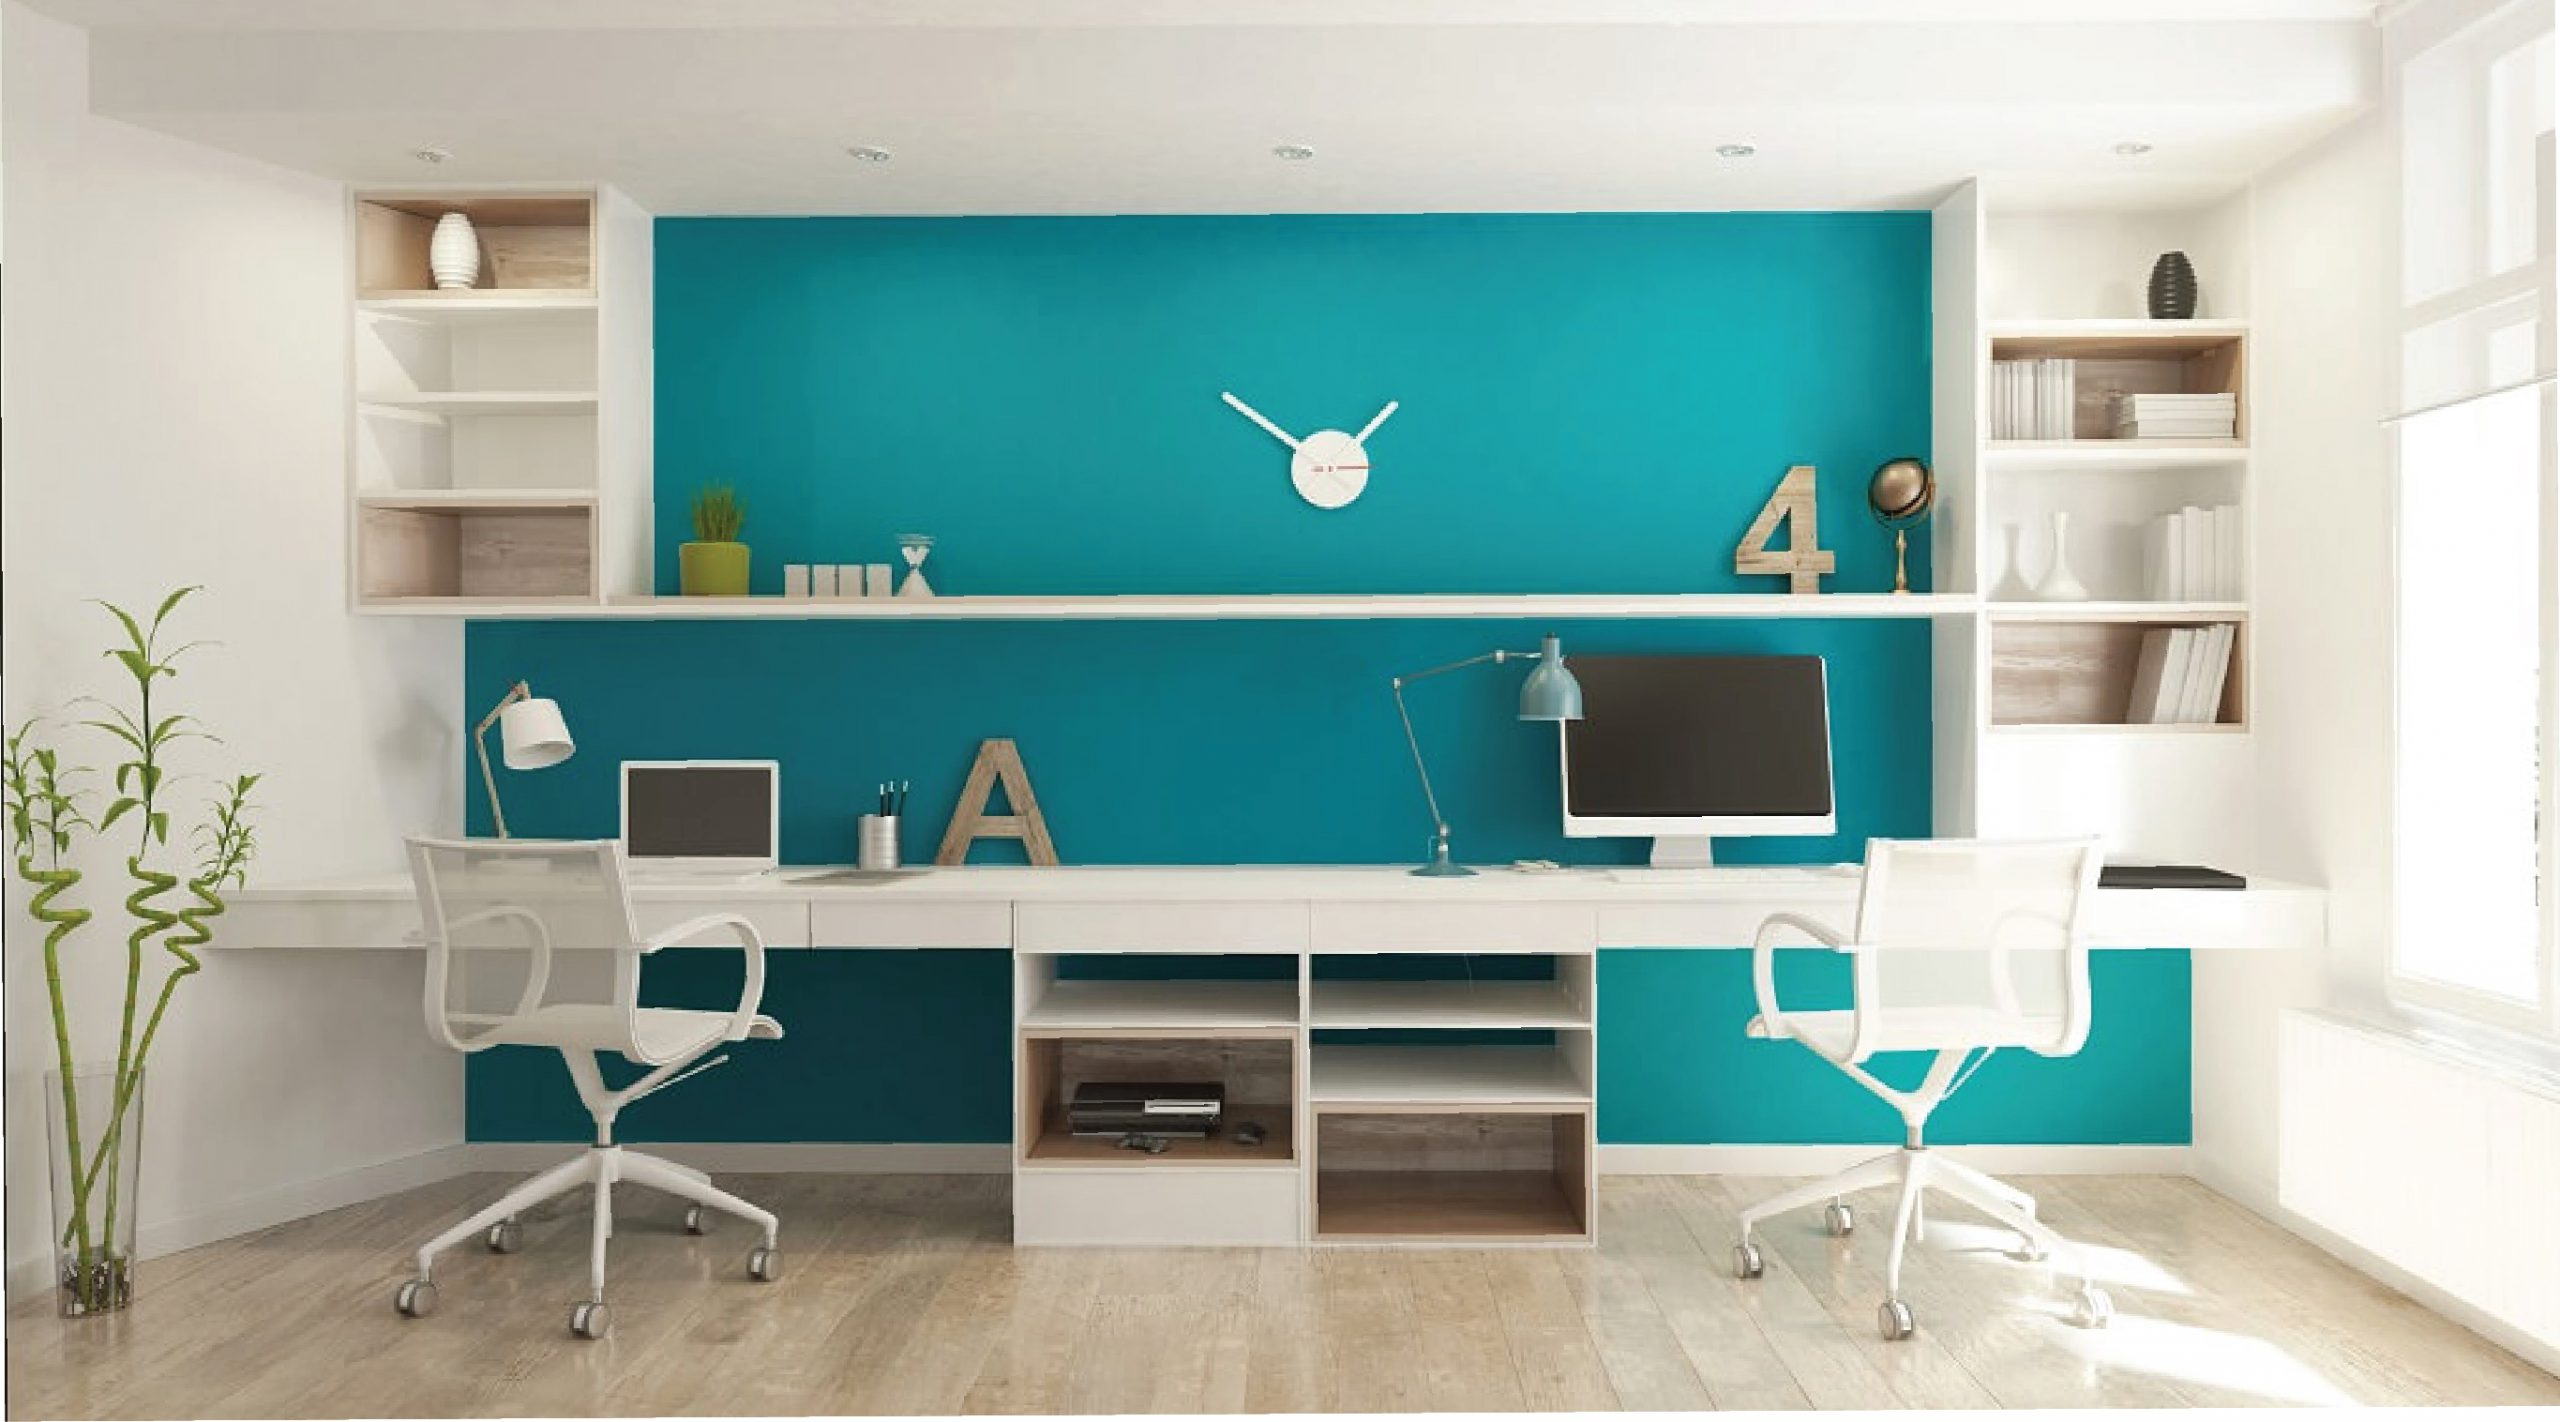 Home offices and study spaced. Work where you live!